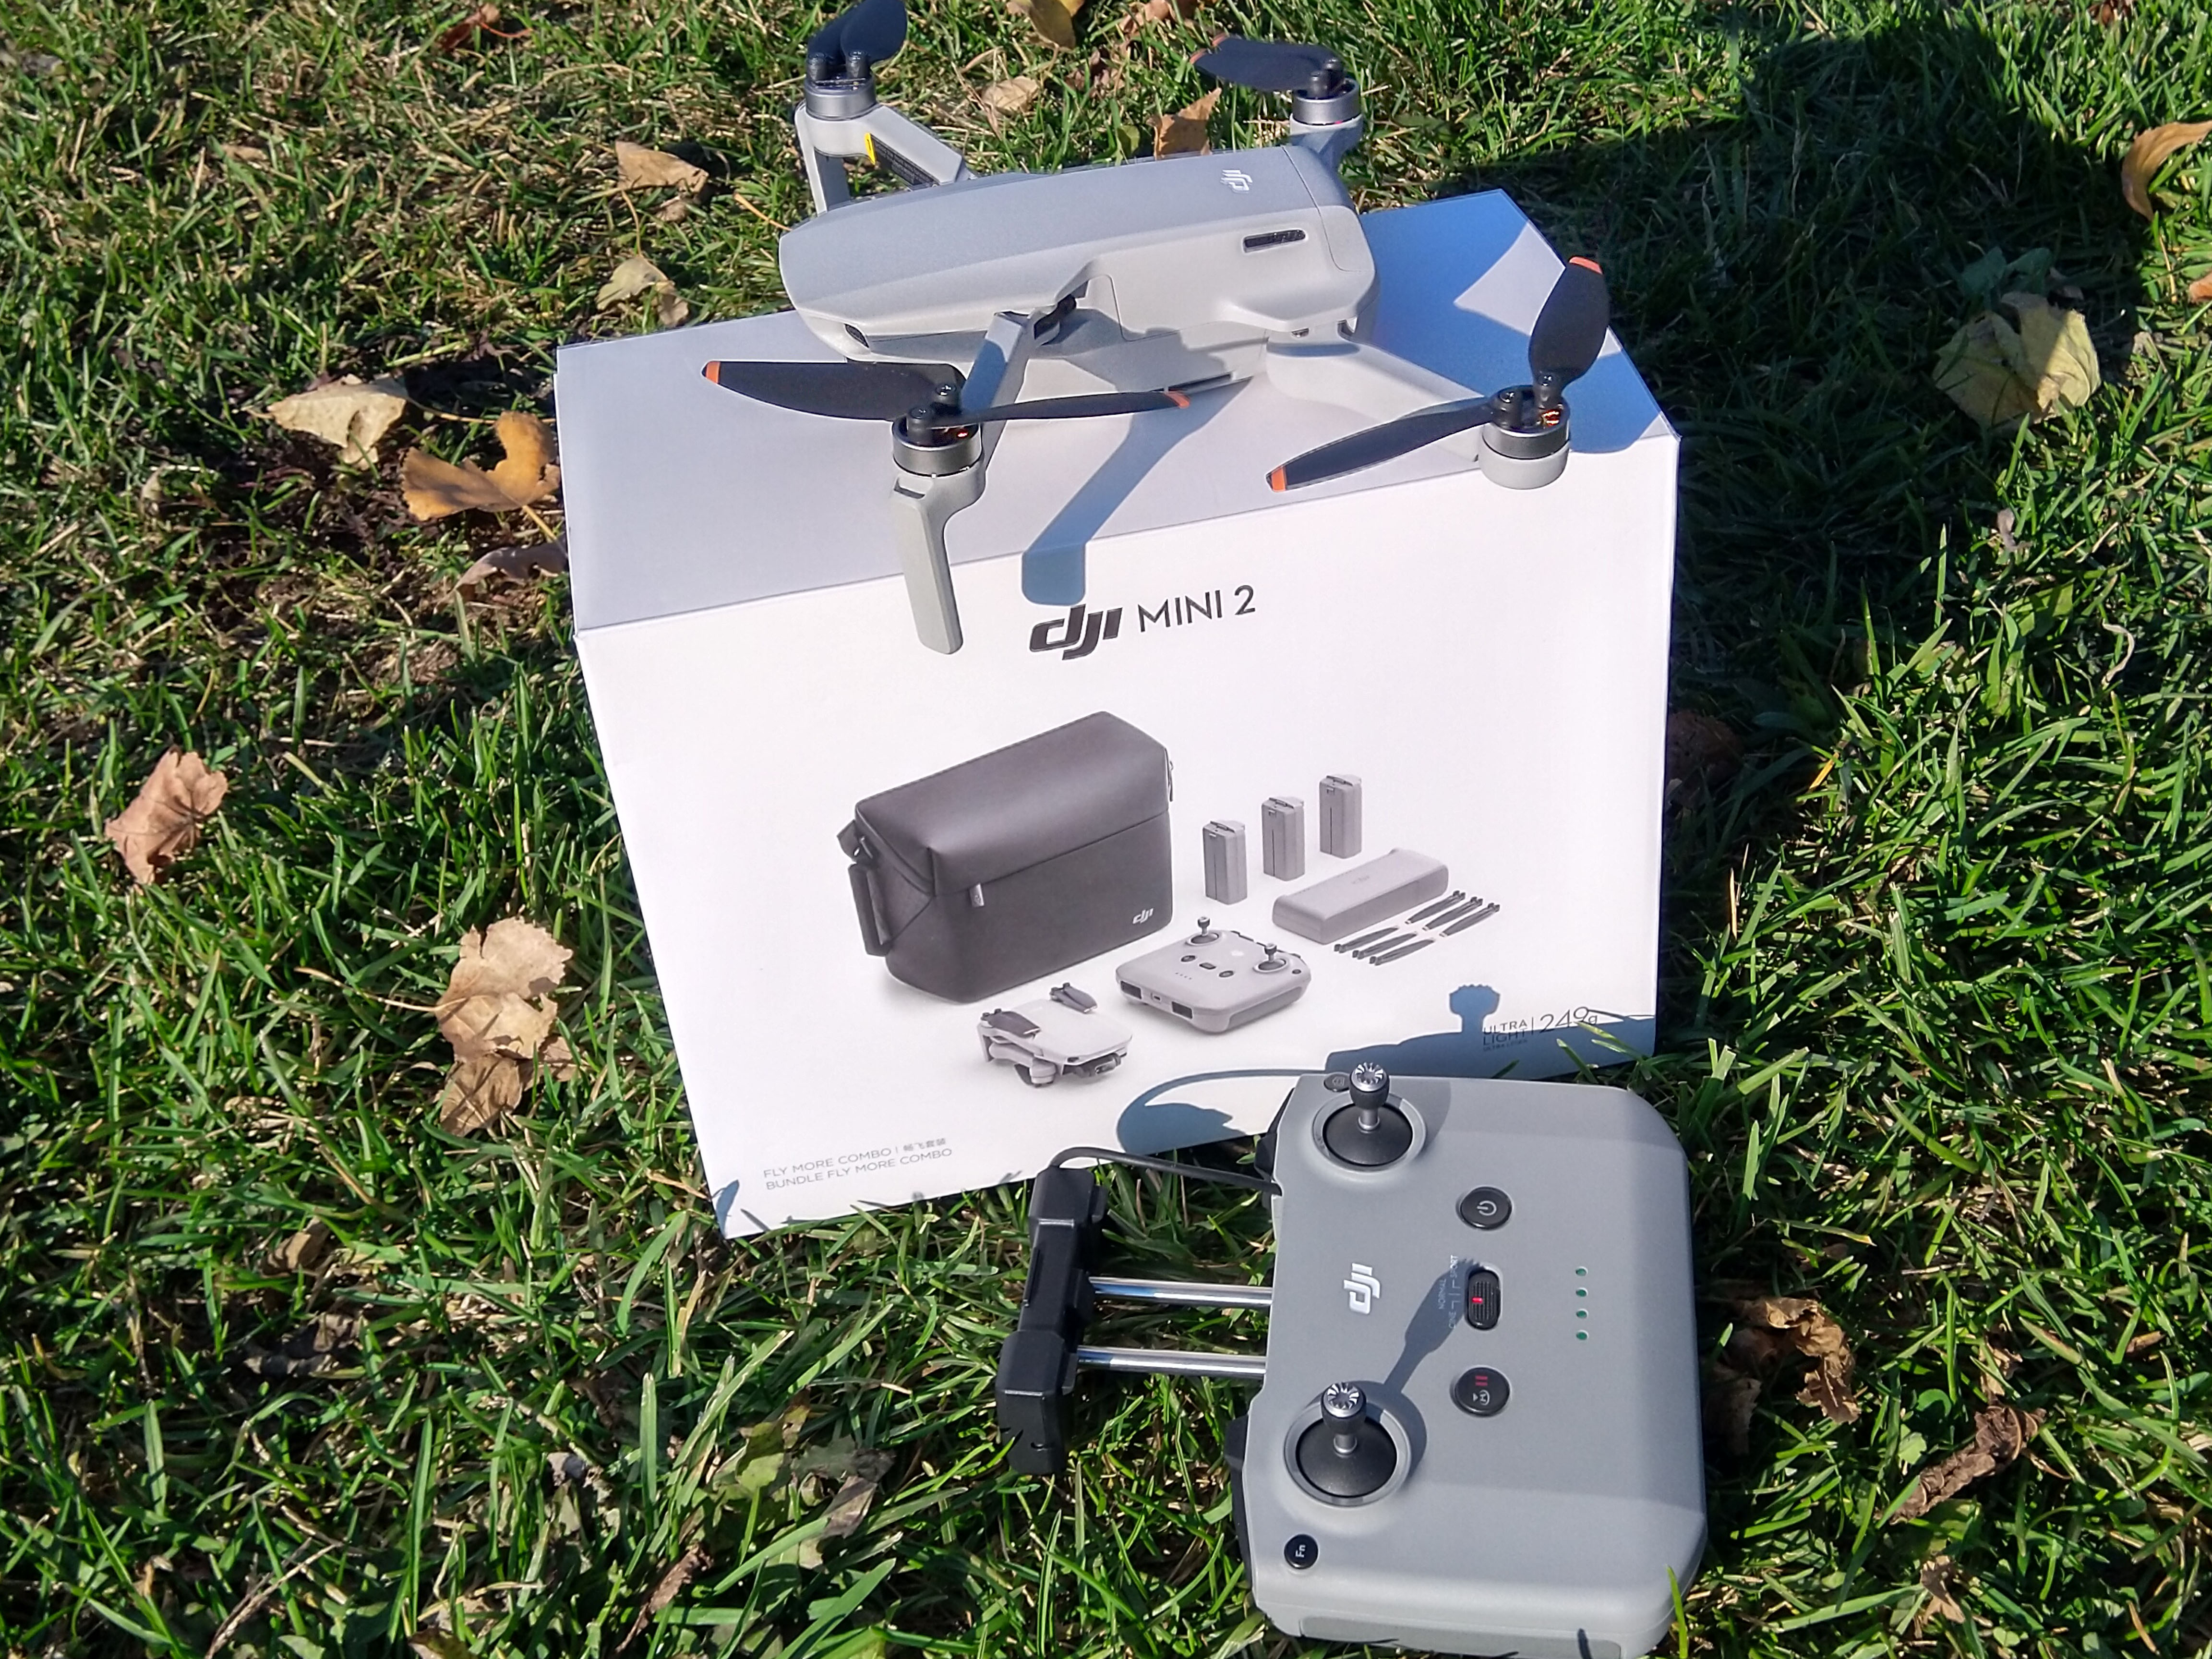 Flying the Minis: The Mini 2 unboxed